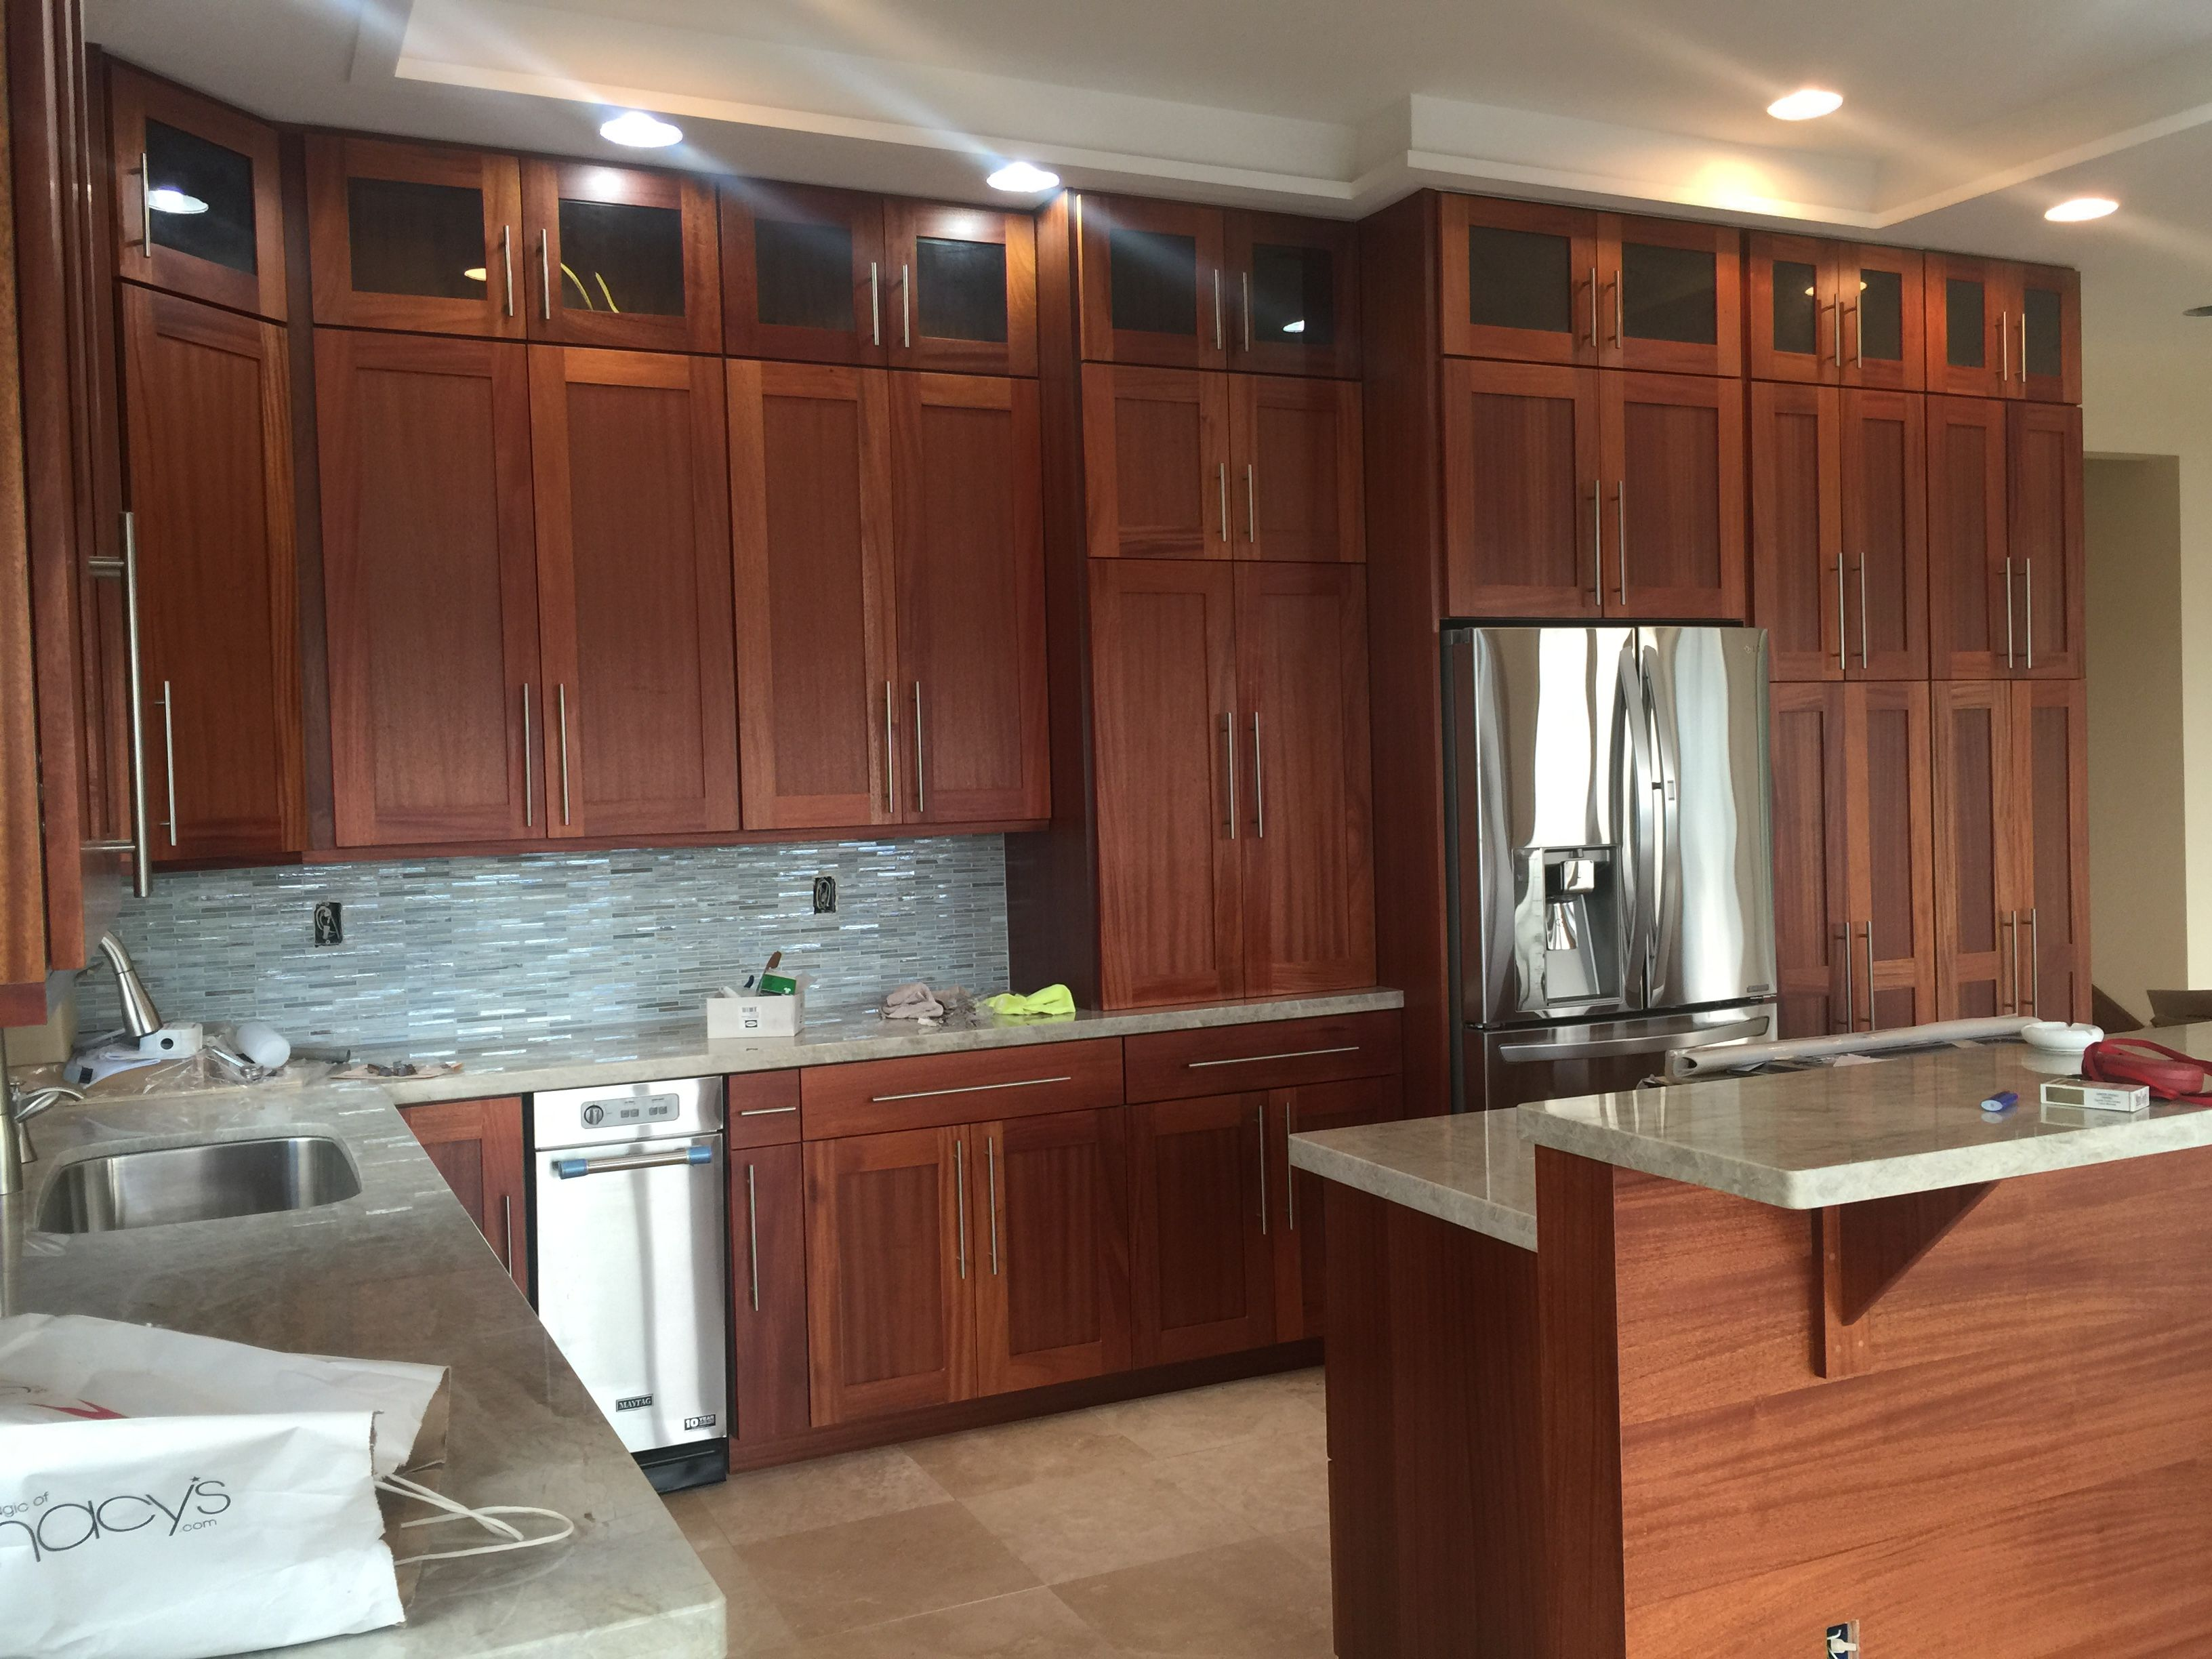 Mahogany Cabinets By Total Building Products Here In Hawaii